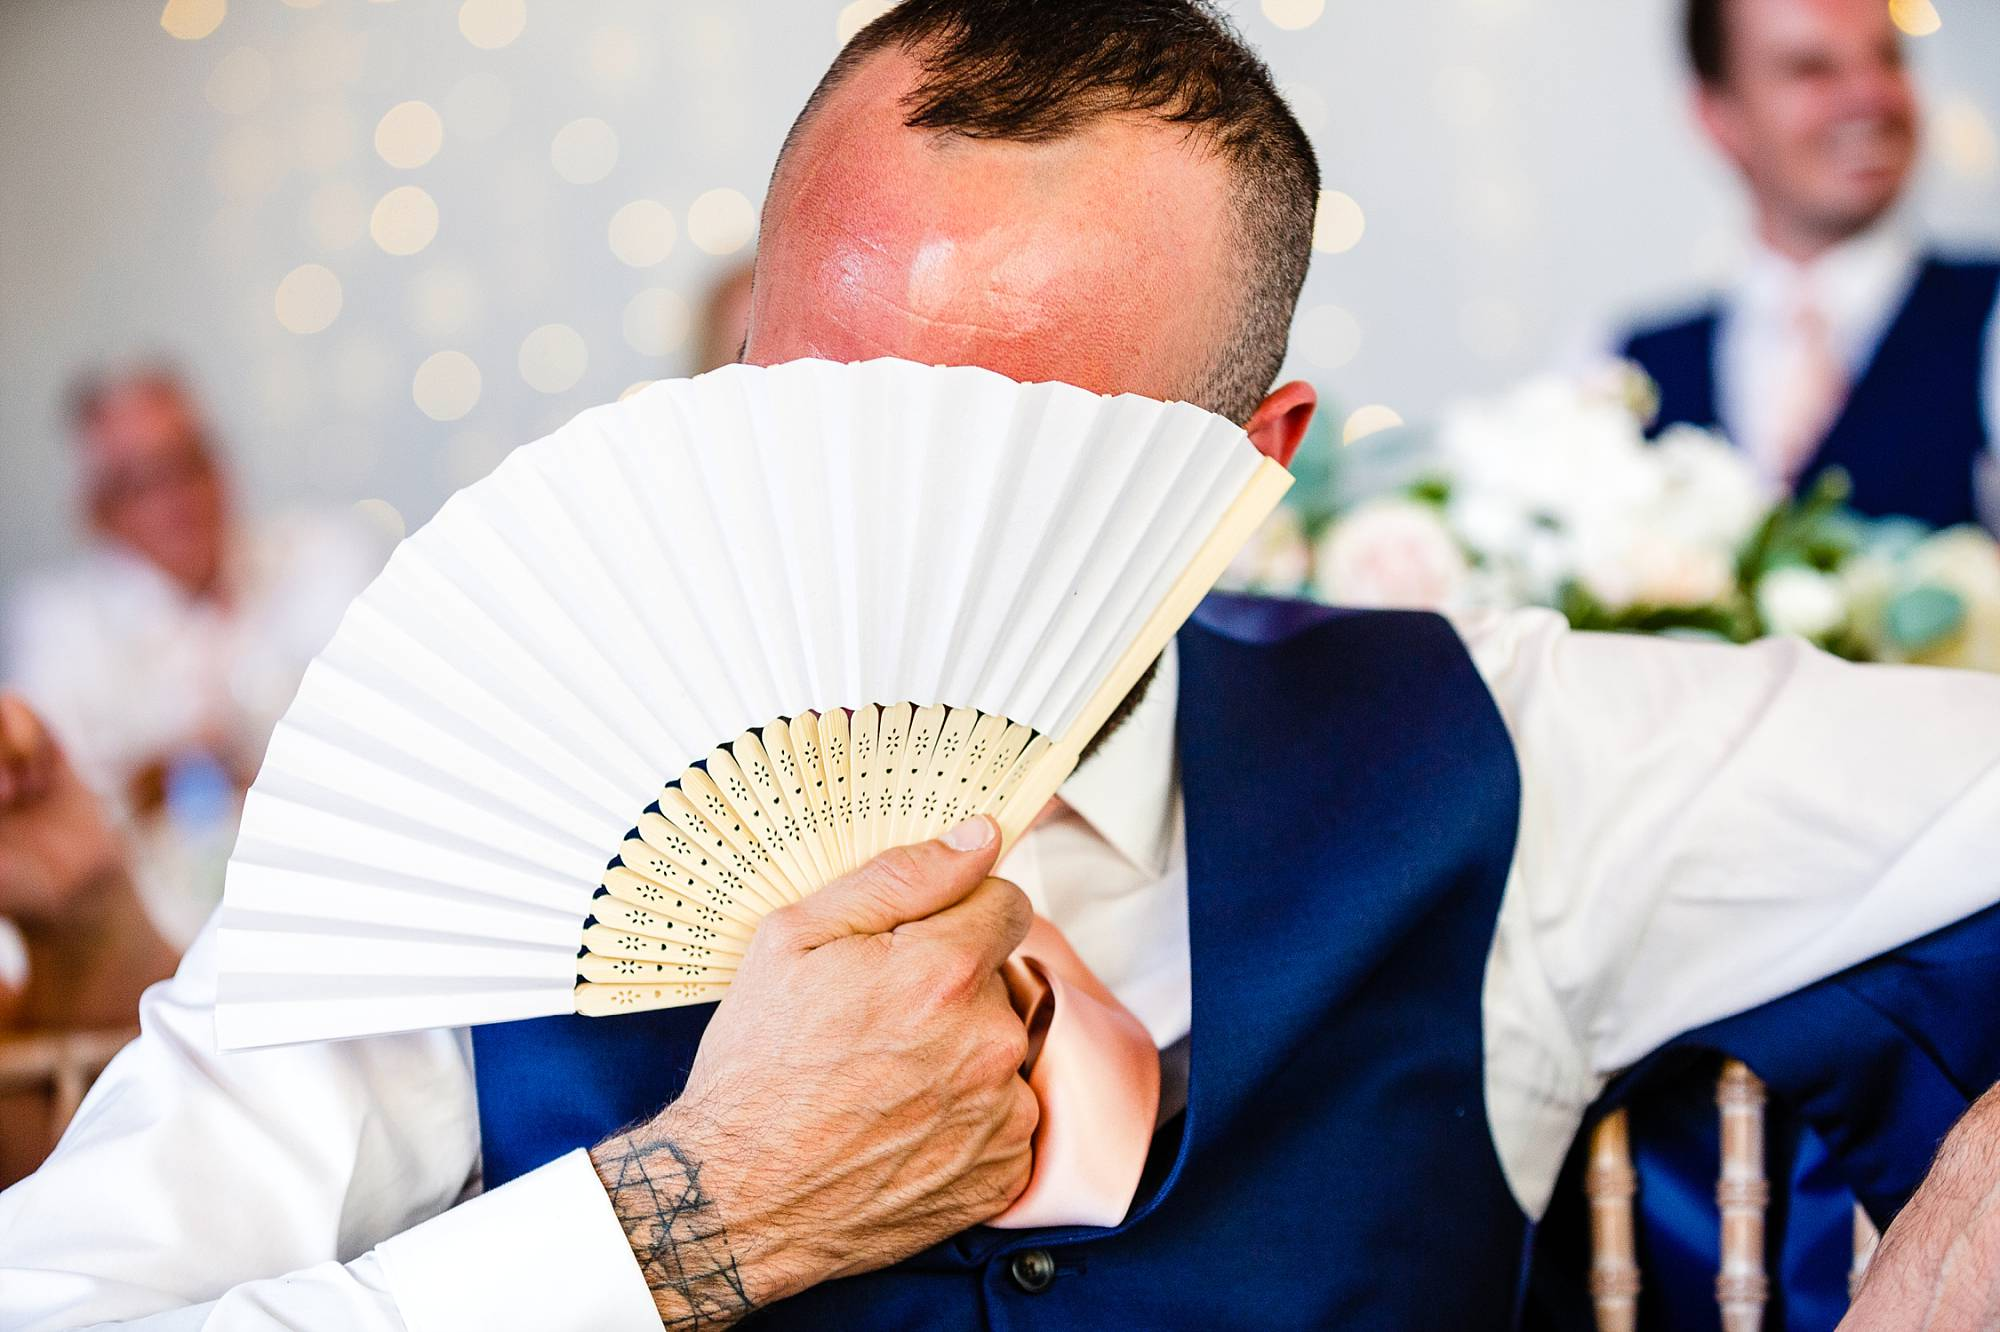 Houchins Essex Wedding Photographer_0081.jpg